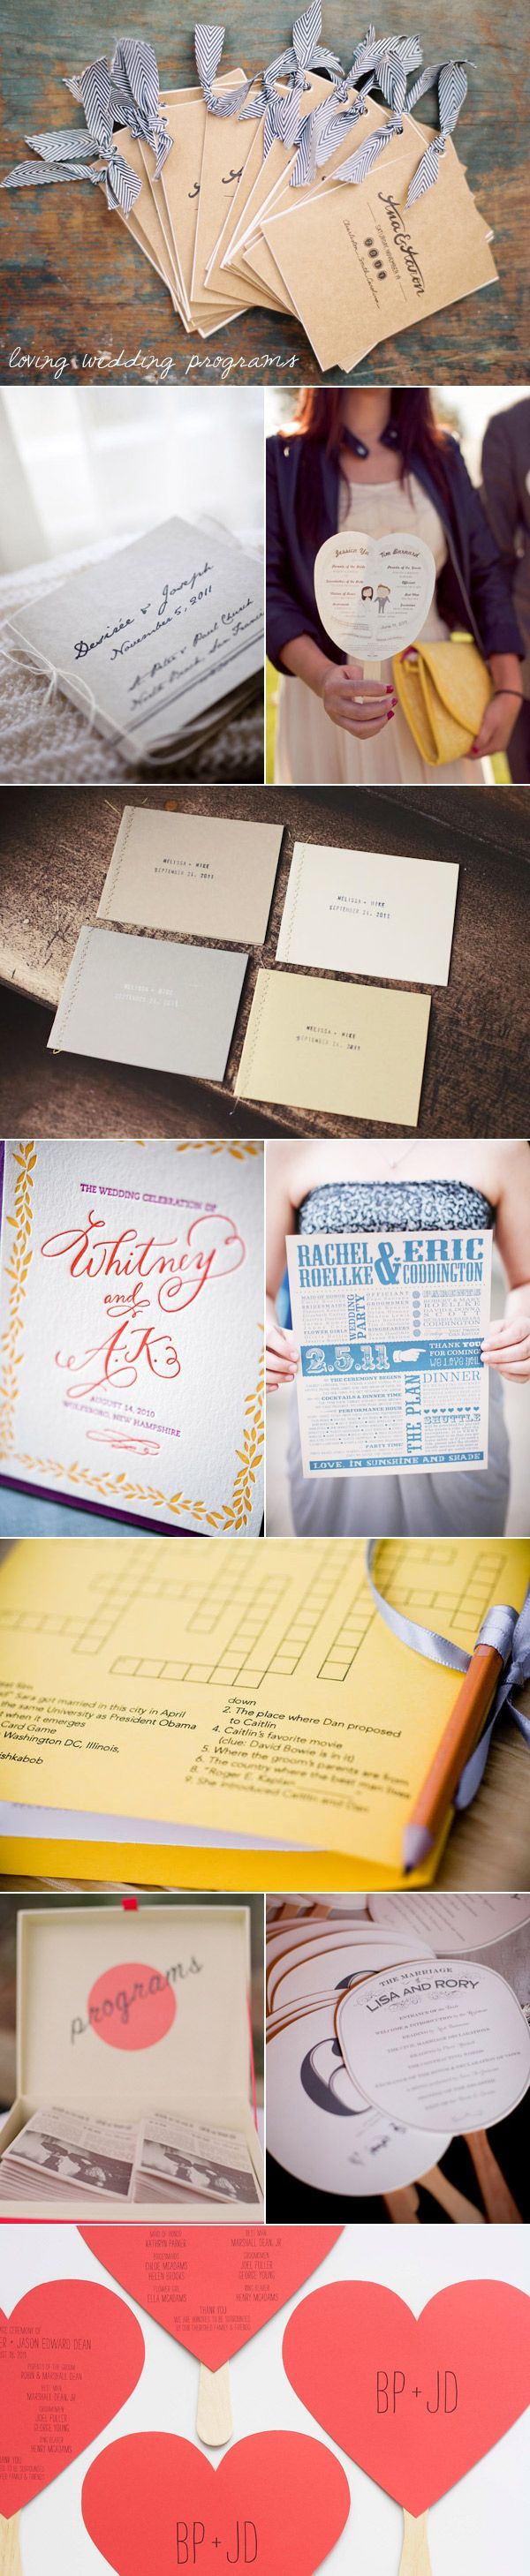 wedding-ceremony-programs